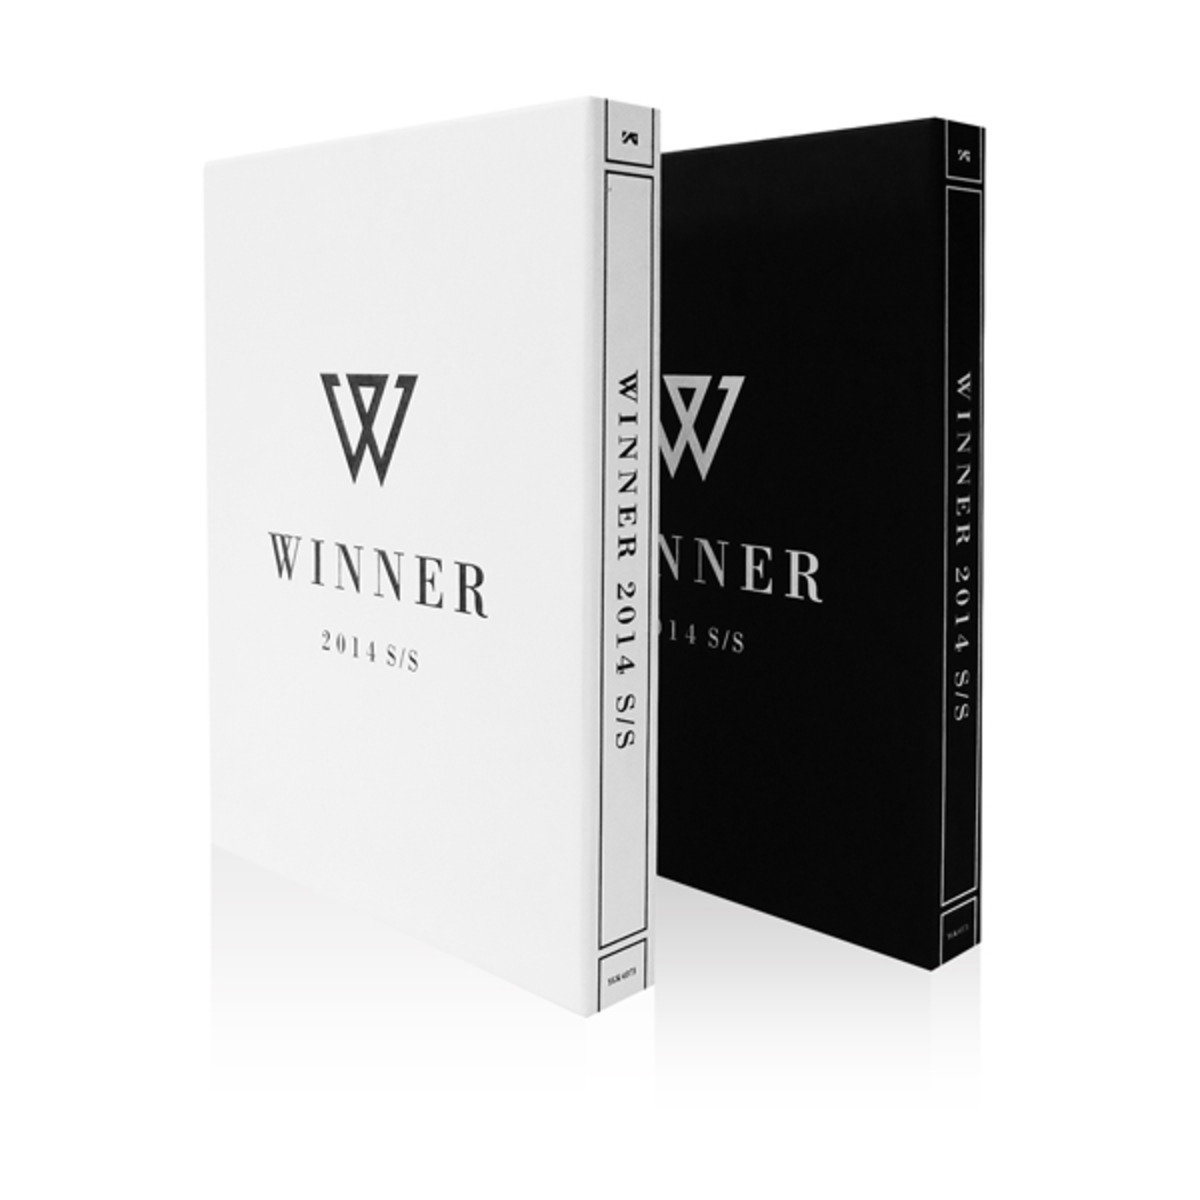 WINNER - DEBUT ALBUM [2014 S/S] (LIMITED EDITION)_Black Ver._8809269503626